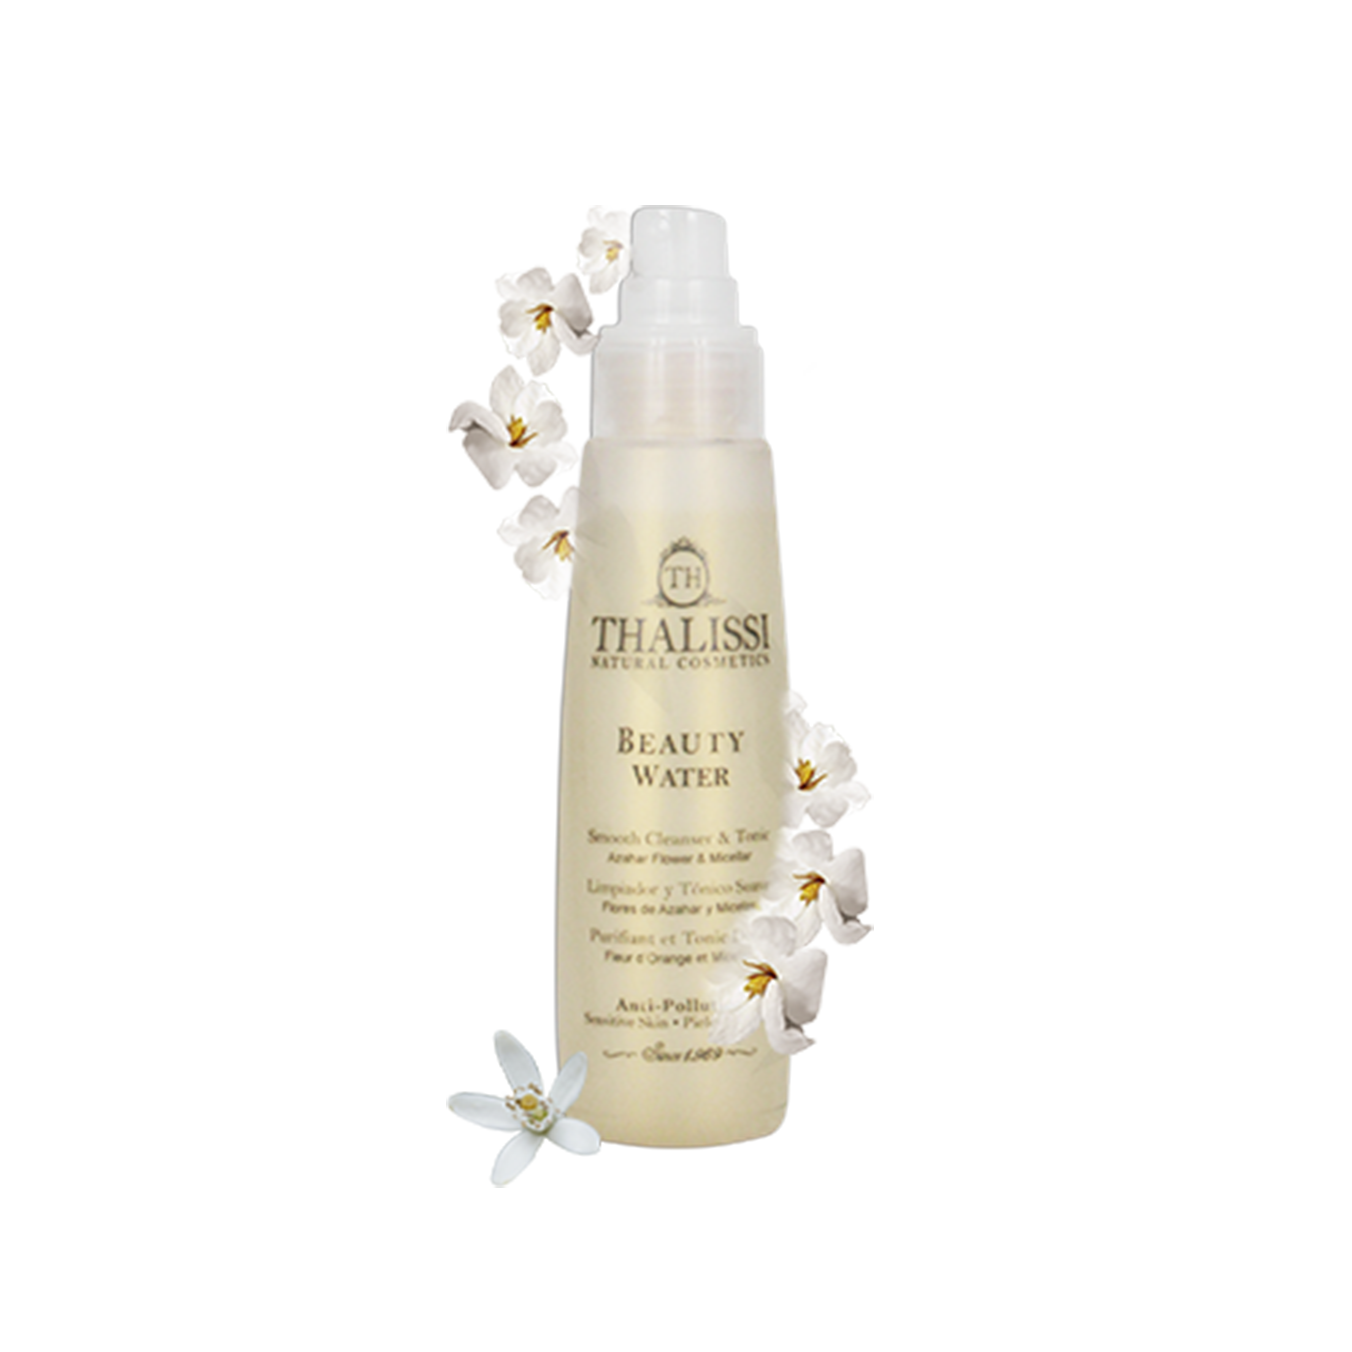 THALISSI BEAUTY WATER